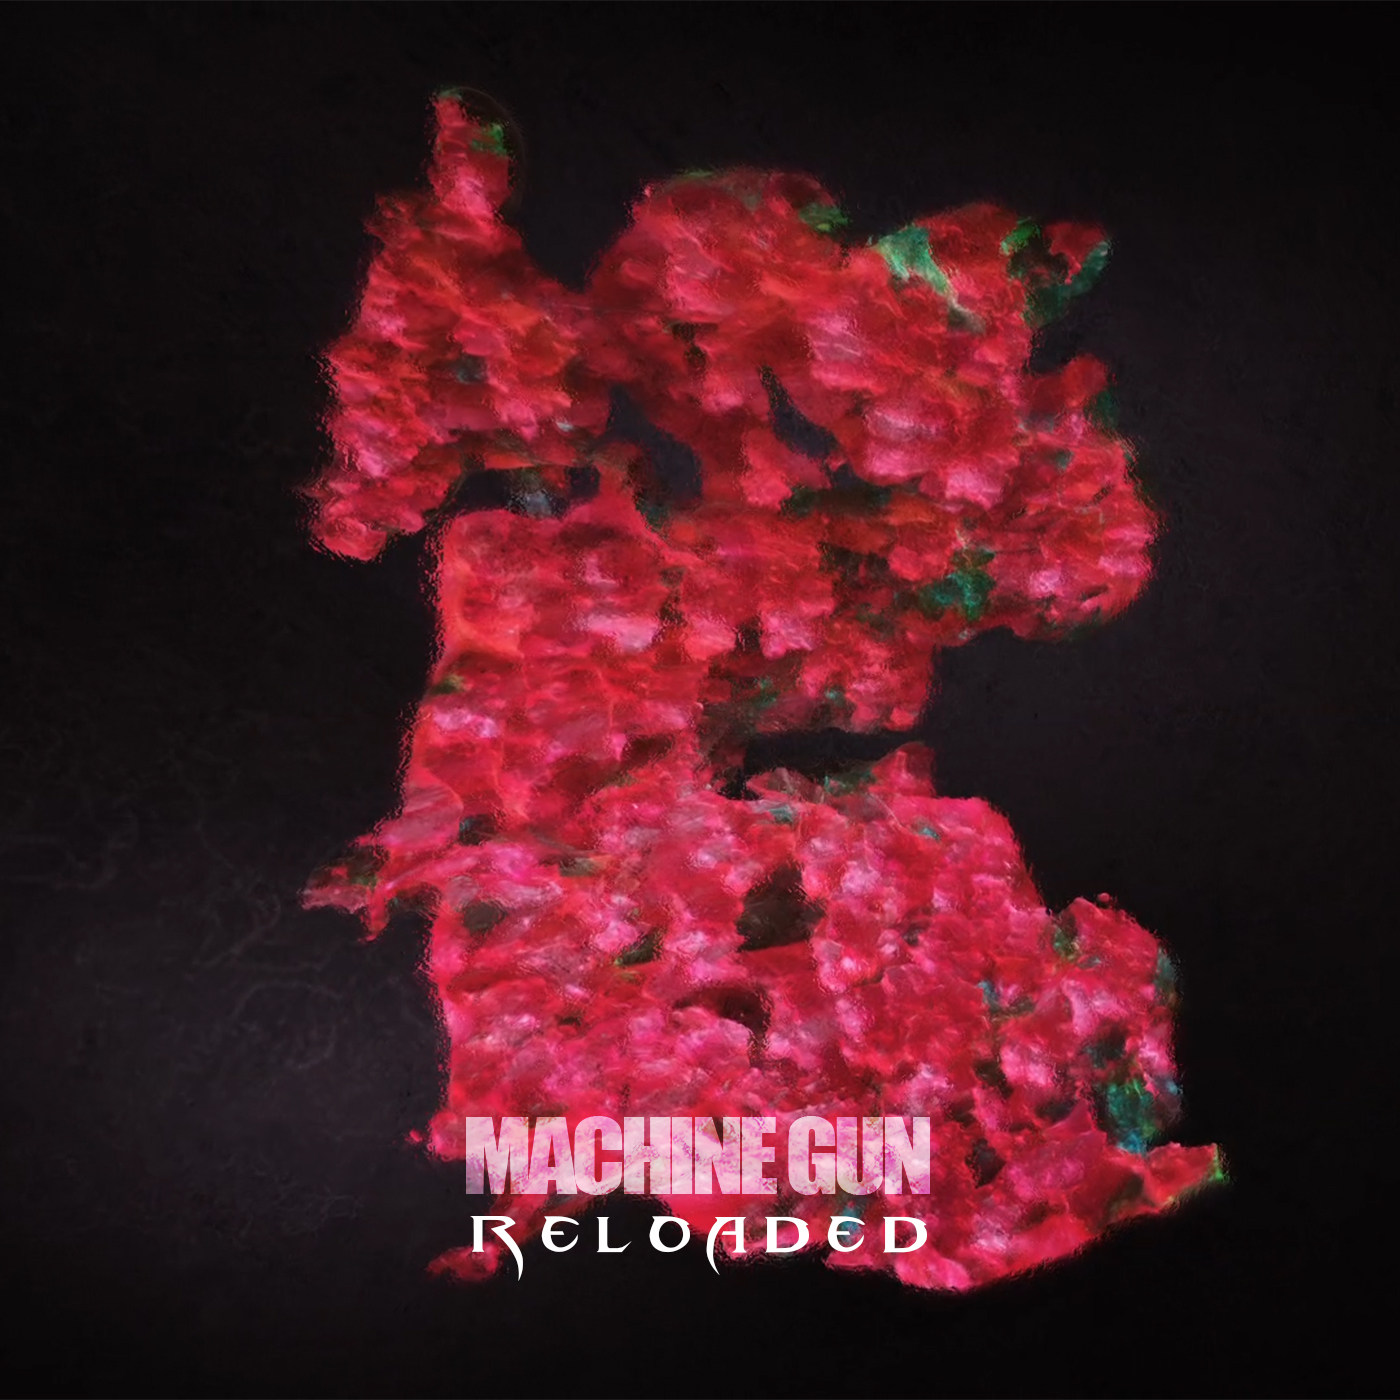 machine gun reloaded club late music clm couvre x chefs